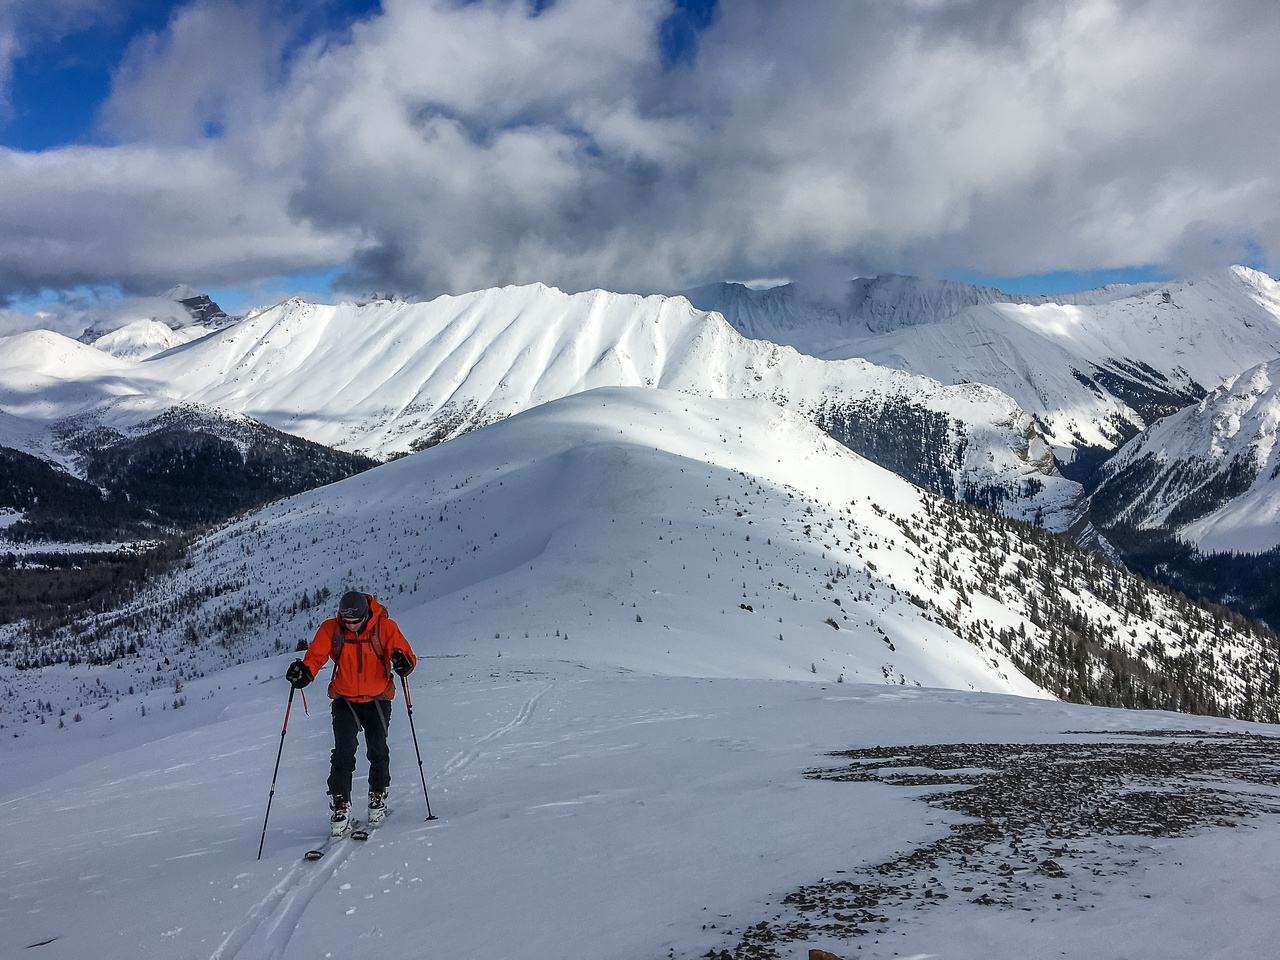 We skied up the east ridge until the snow was concrete and boot packed from there.